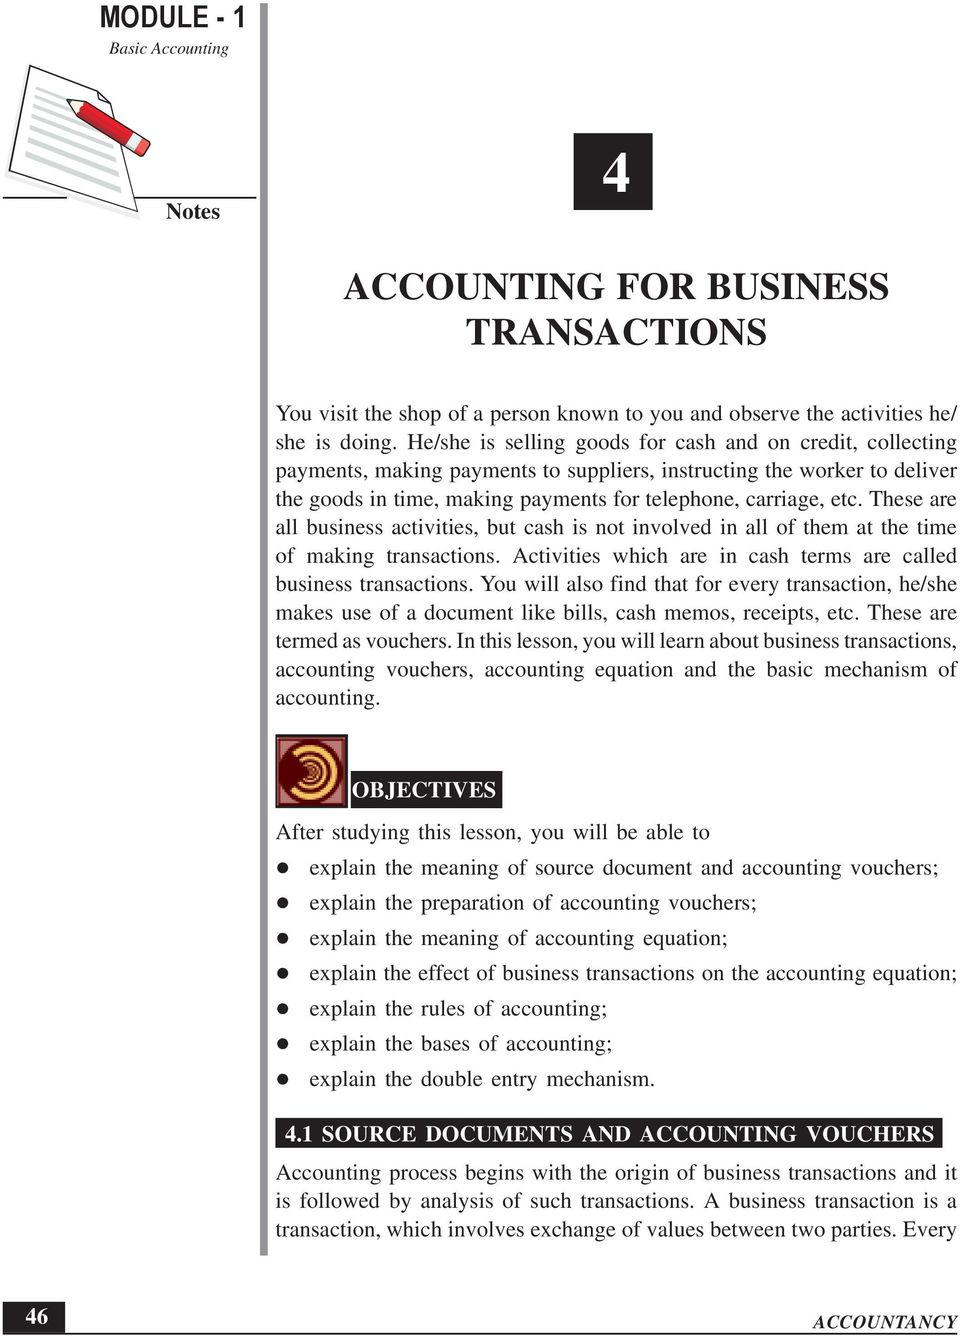 These are all business activities, but cash is not involved in all of them at the time of making transactions. Activities which are in cash terms are called business transactions.